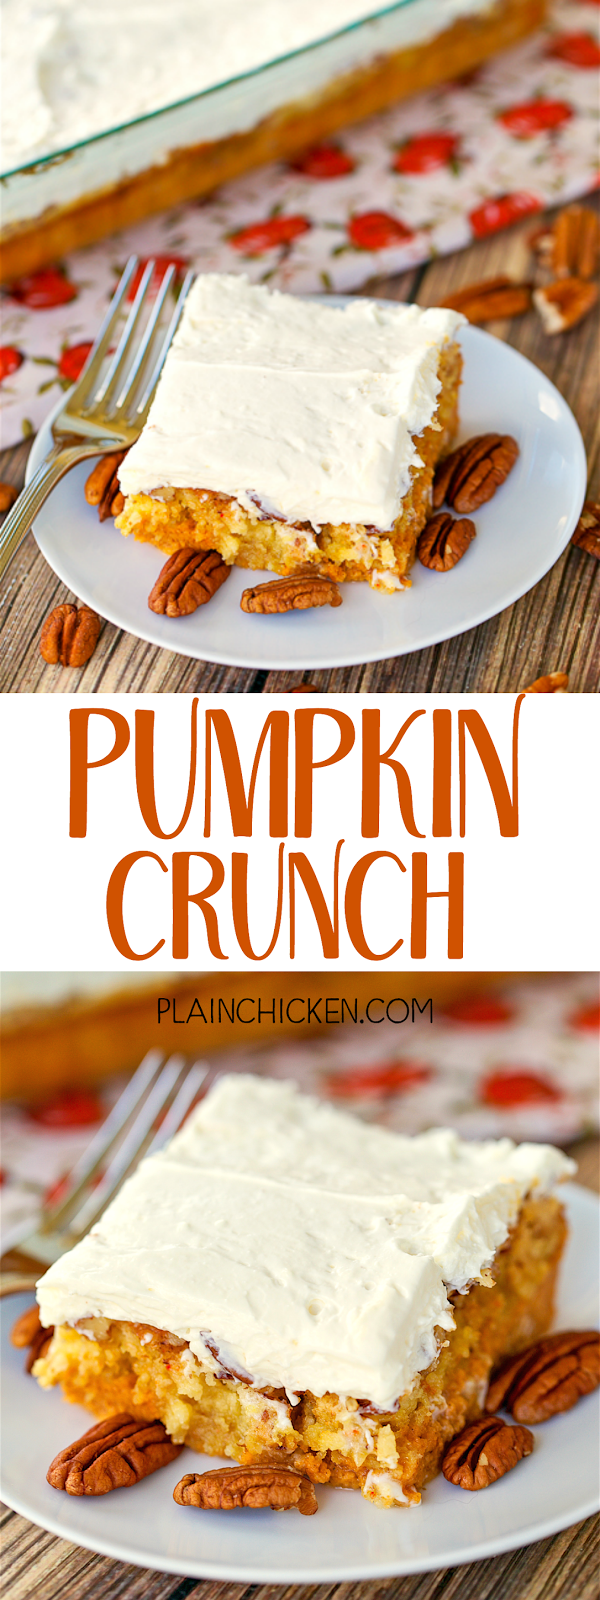 Pumpkin Crunch - I hate pumpkin, but I LOVE this cake!! SO easy! Pumpkin, evaporated milk, eggs, sugar, pumpkin spice, cake mix, pecans and butter. Frost with a mixture of cream cheese, powdered sugar and cool whip. SO good. I took this to a potluck and everyone cleaned their plate. The pumpkin haters were shocked when I told them what it was!! YUM!